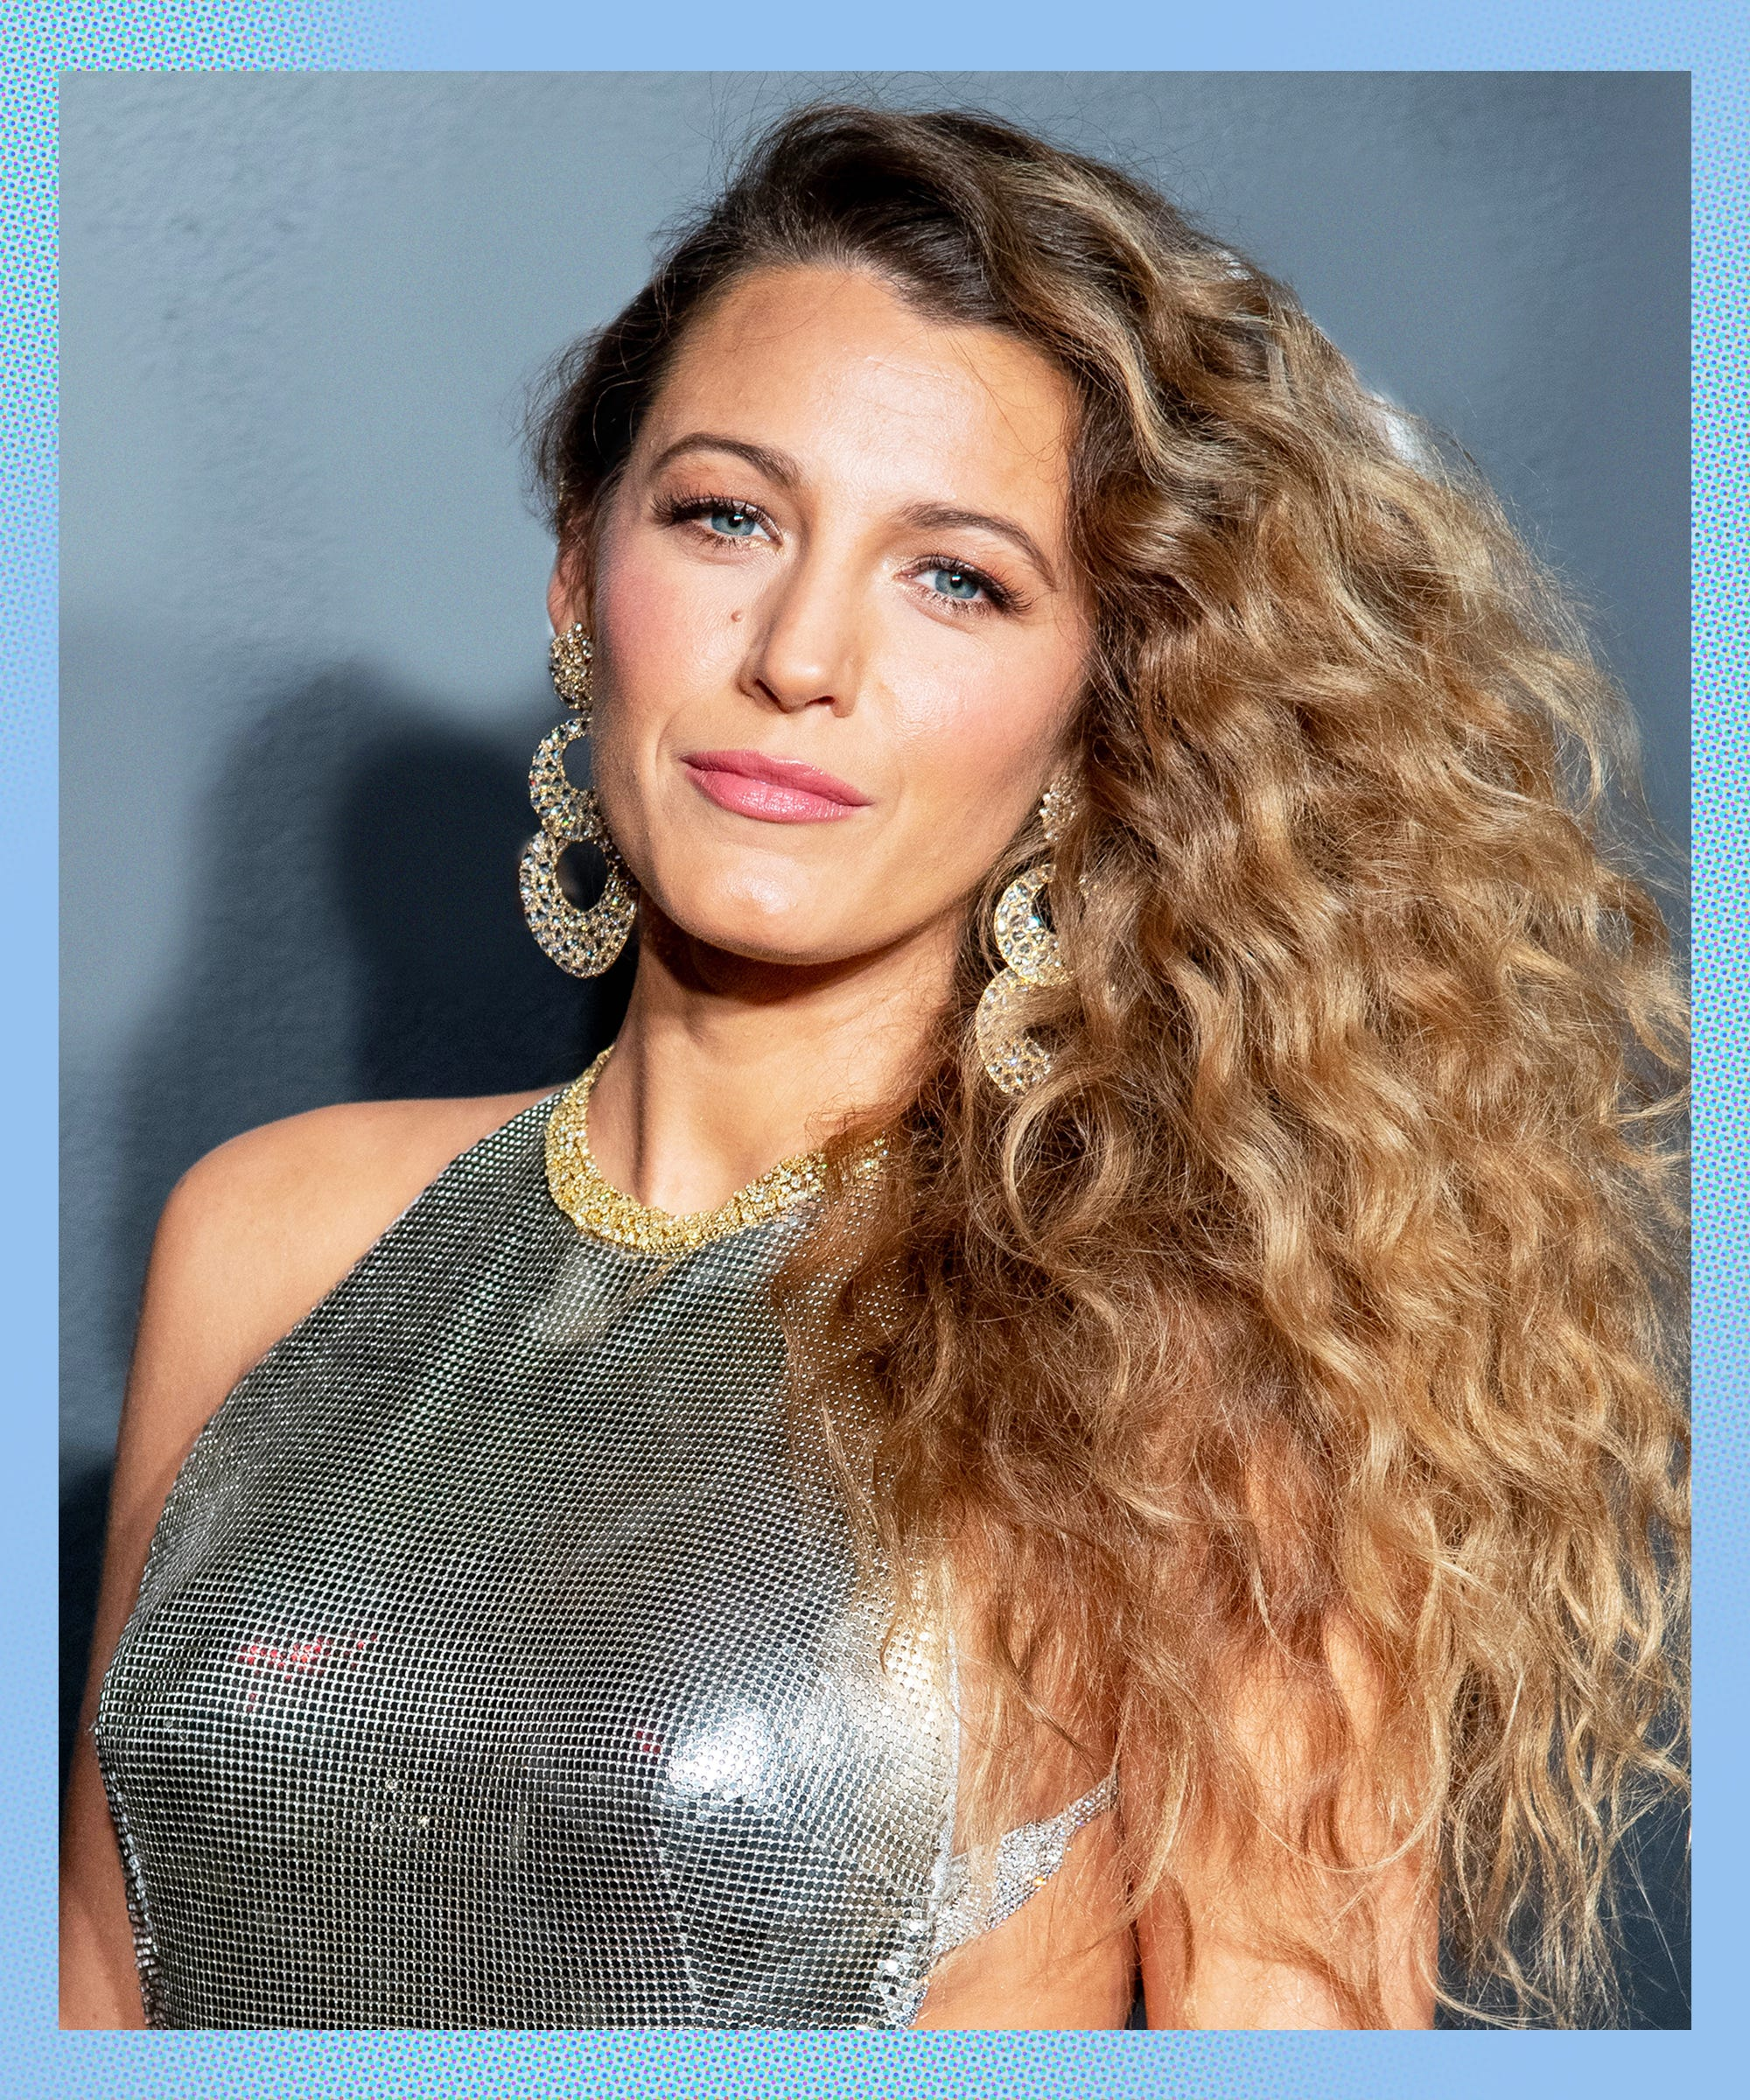 Blake Lively Wore Forever 21 on the Red Carpet And Said It Was Vintage